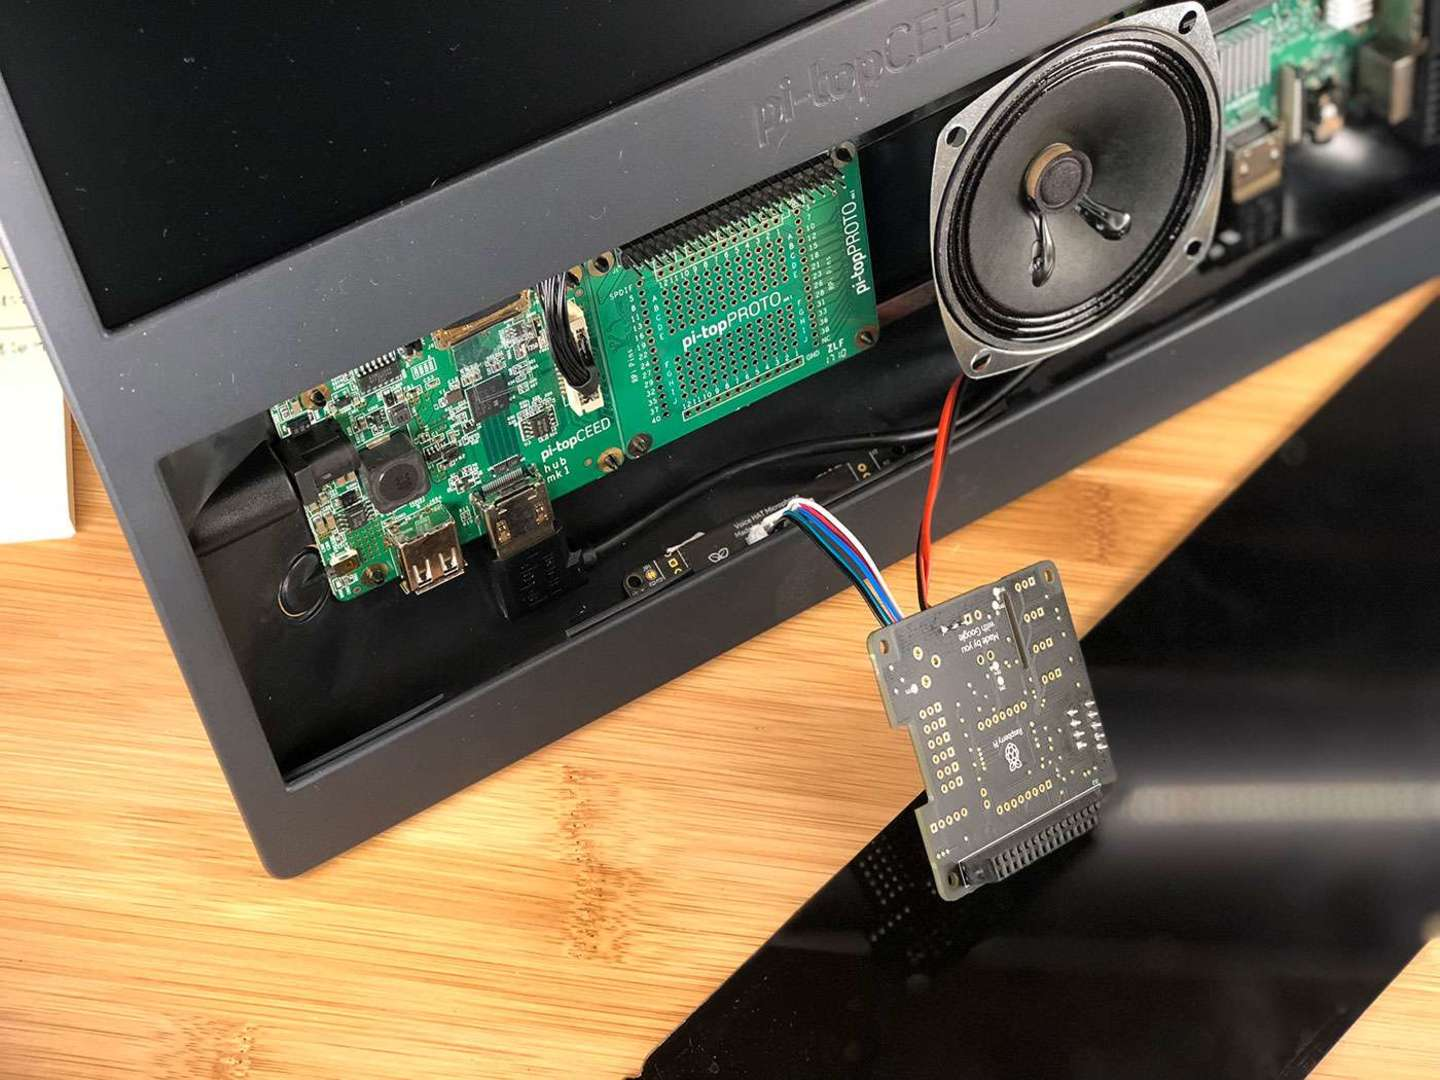 Connecting the Google Voice Kit microphone